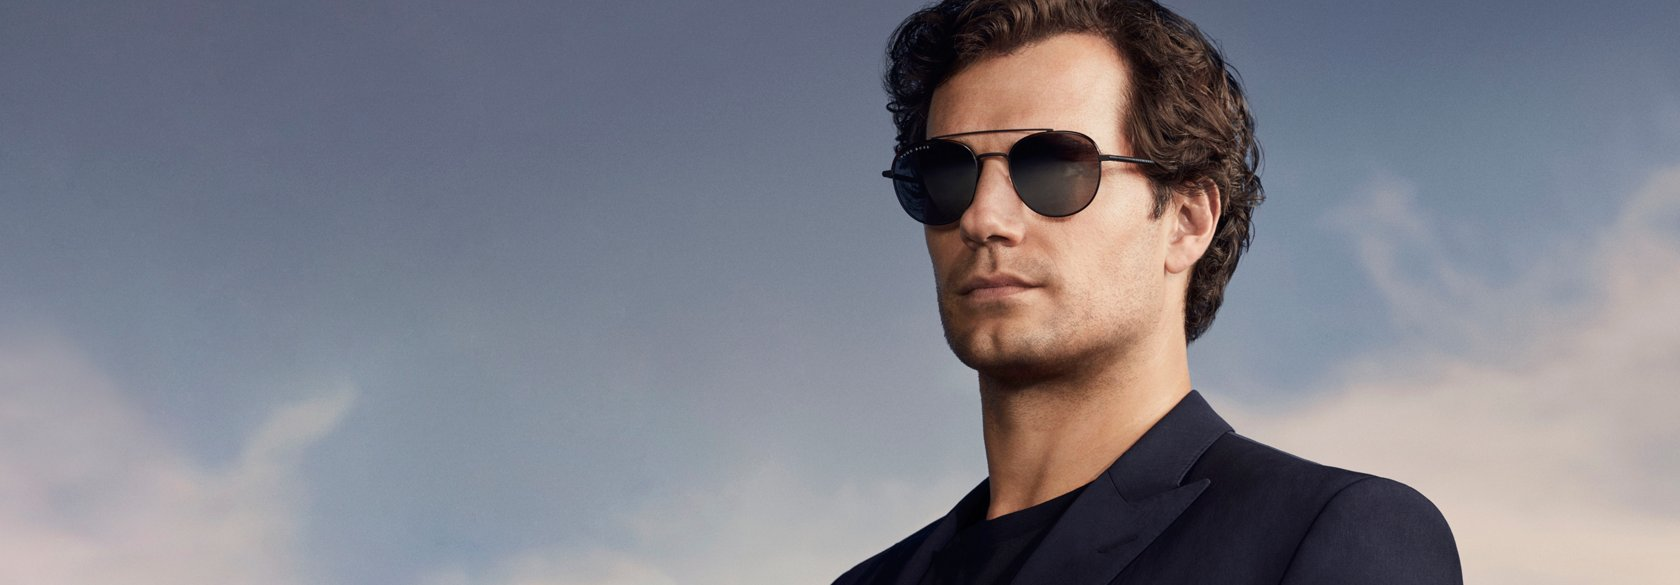 87d3efc2b992 Designer glasses for Him & Her | The new collection by HUGO BOSS